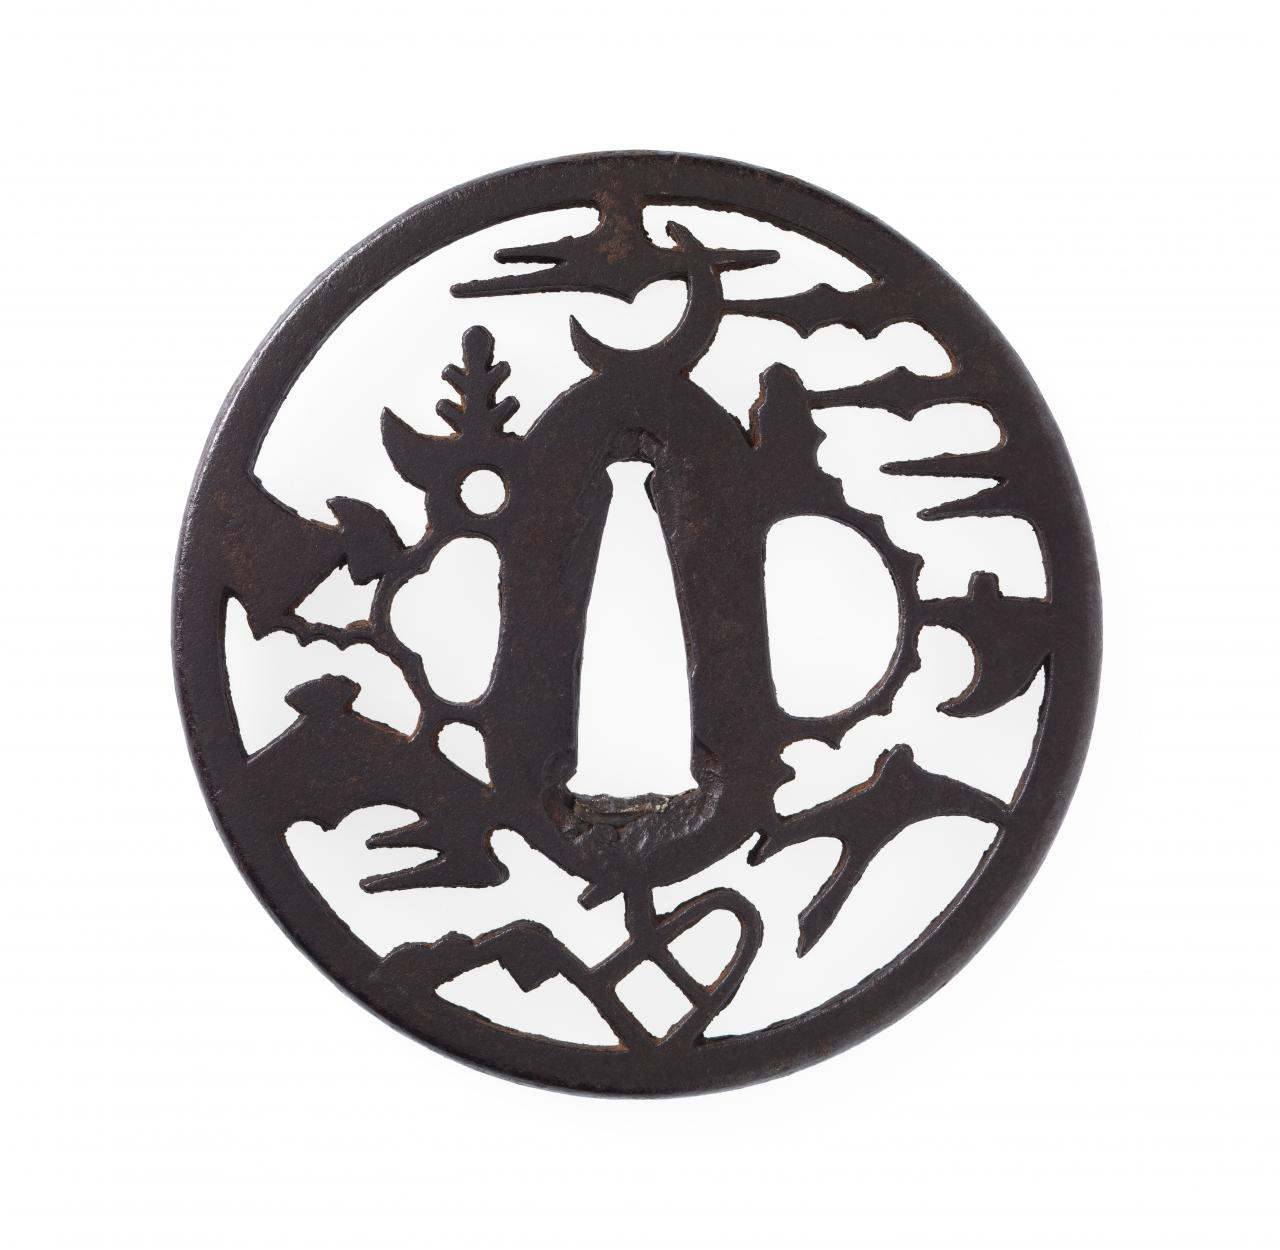 Sword guard with crescent moon and crane in landscape design